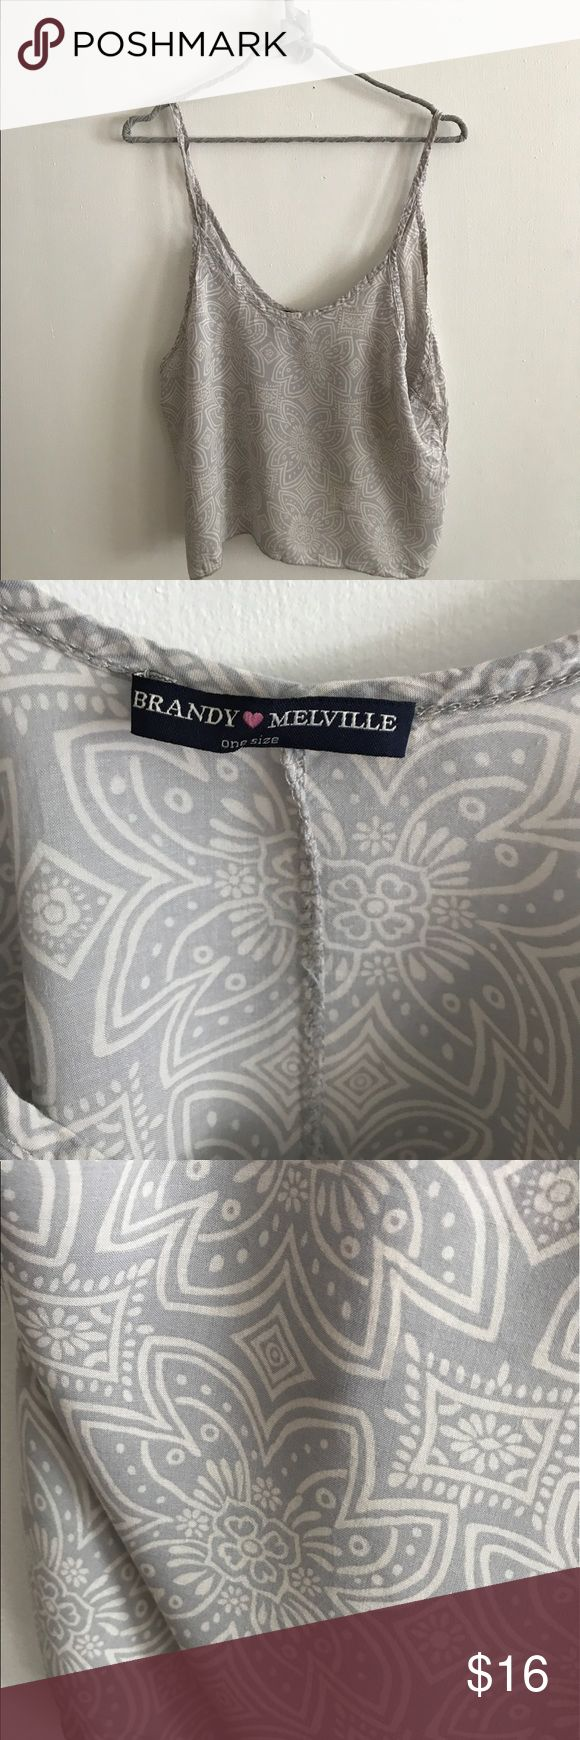 Brandy Melville tank top Perfect for music festivals! Cute with shorts. Brandy Melville Tops Tank Tops